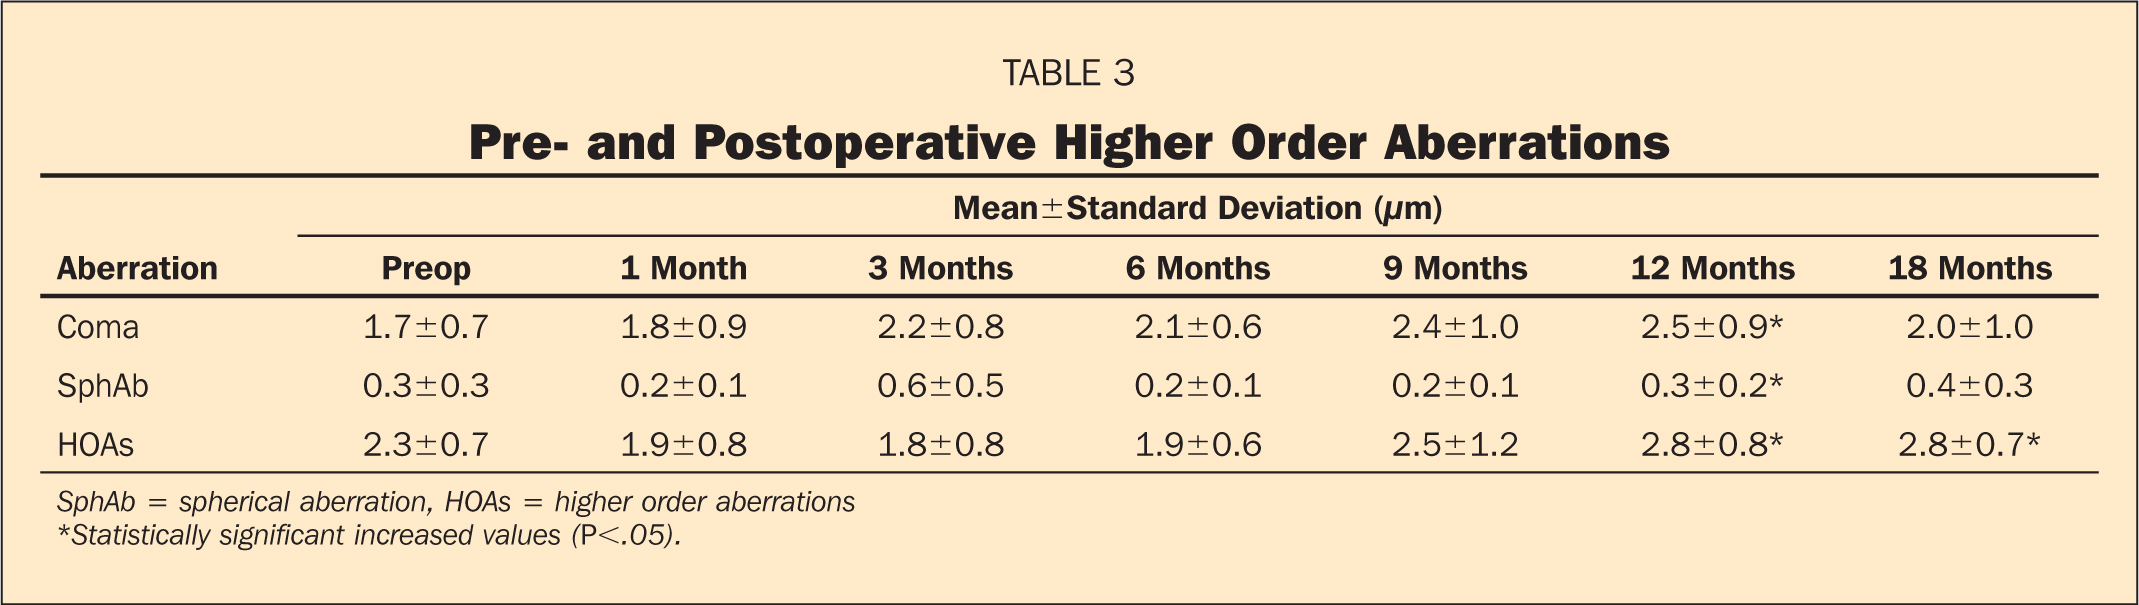 Pre- and Postoperative Higher Order Aberrations